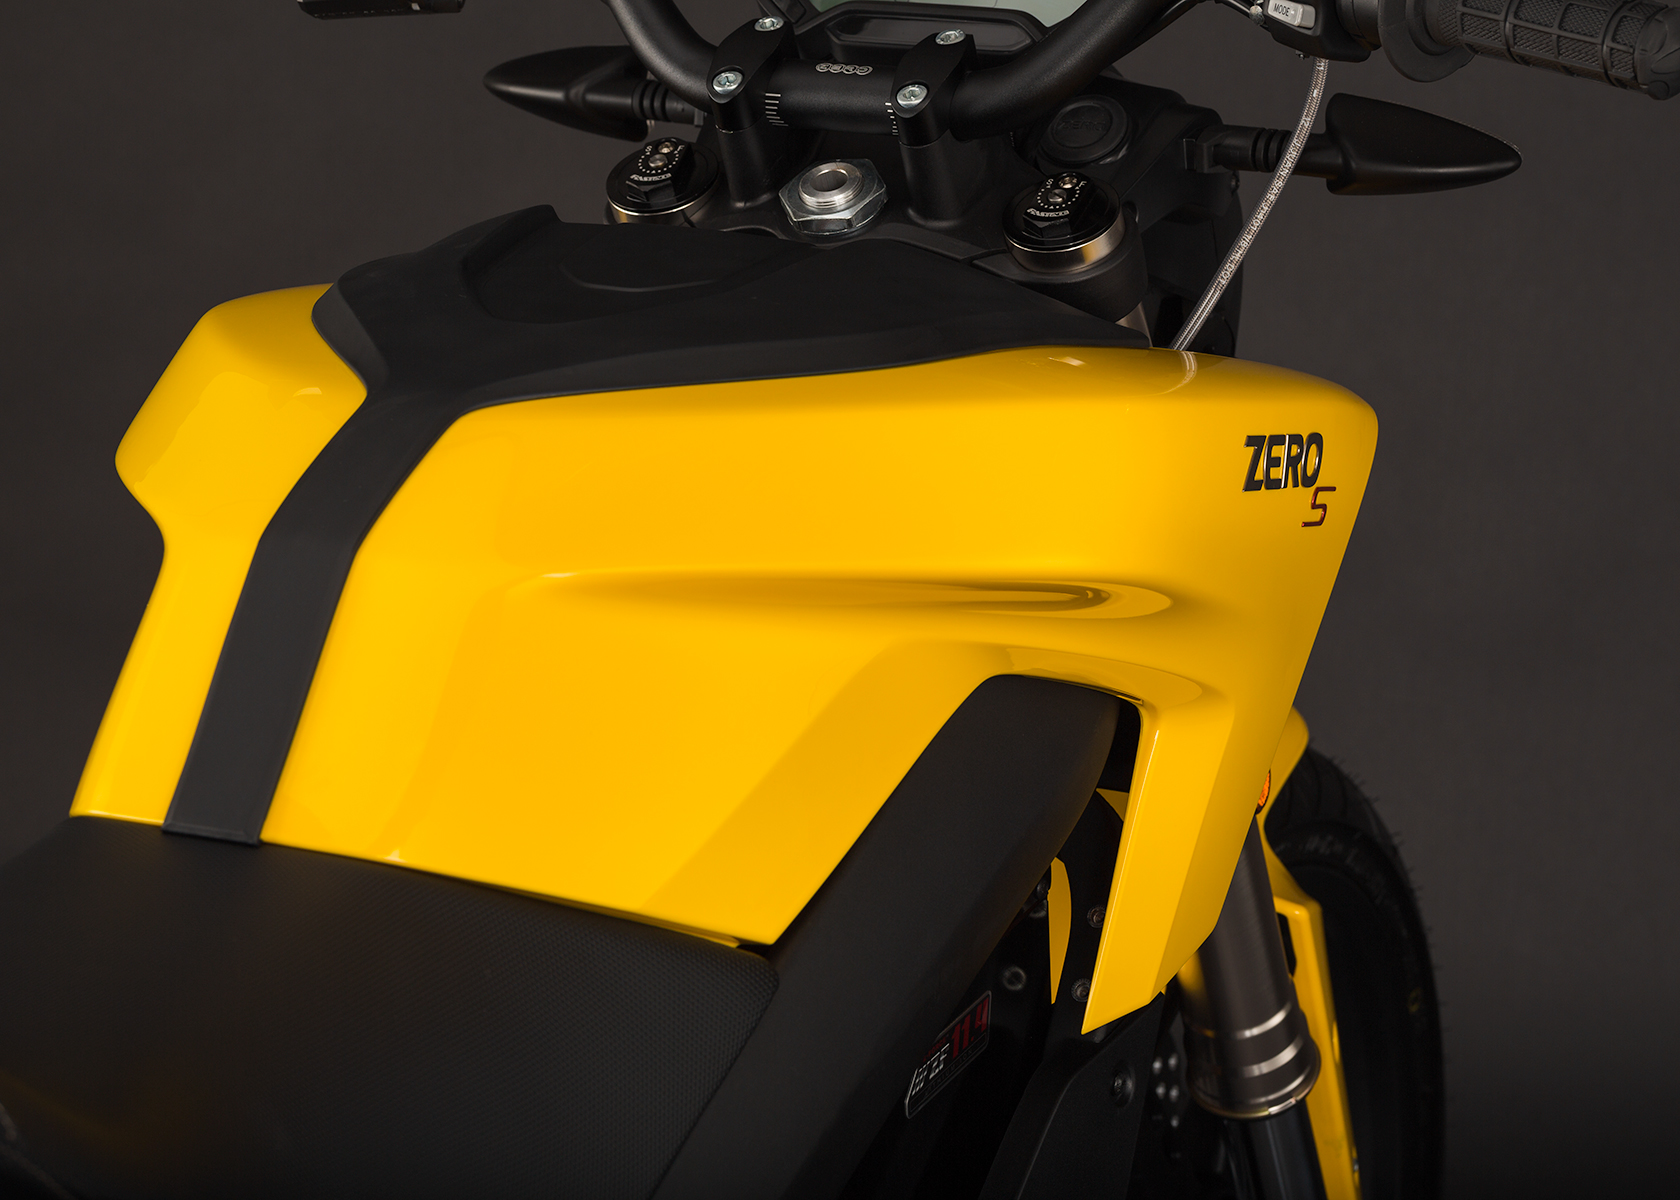 2014 Zero S Electric Motorcycle: Tank